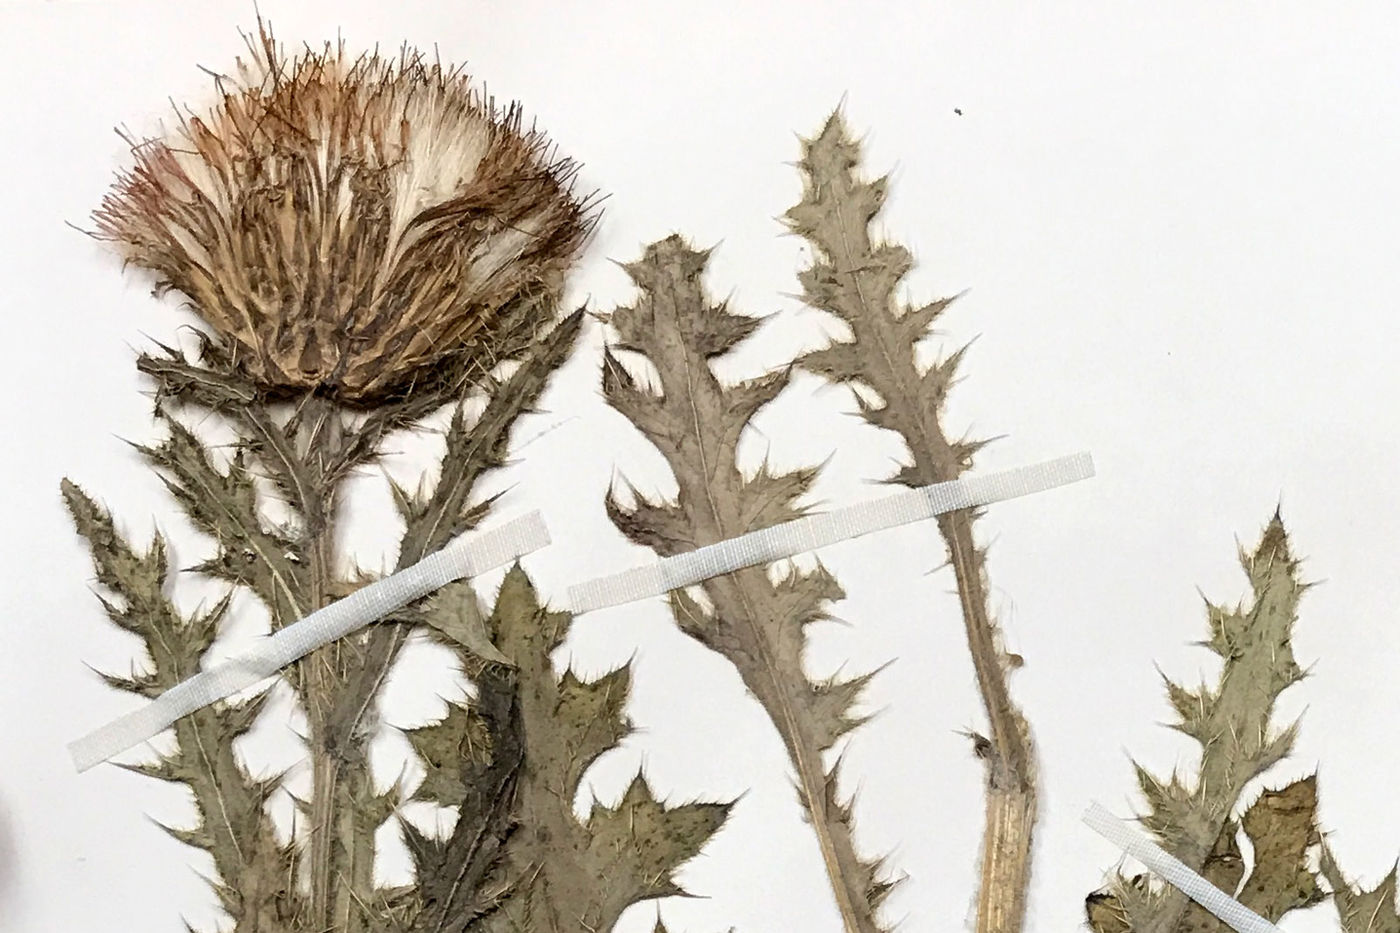 Dried prairie thistle plant specimen attached to paper.